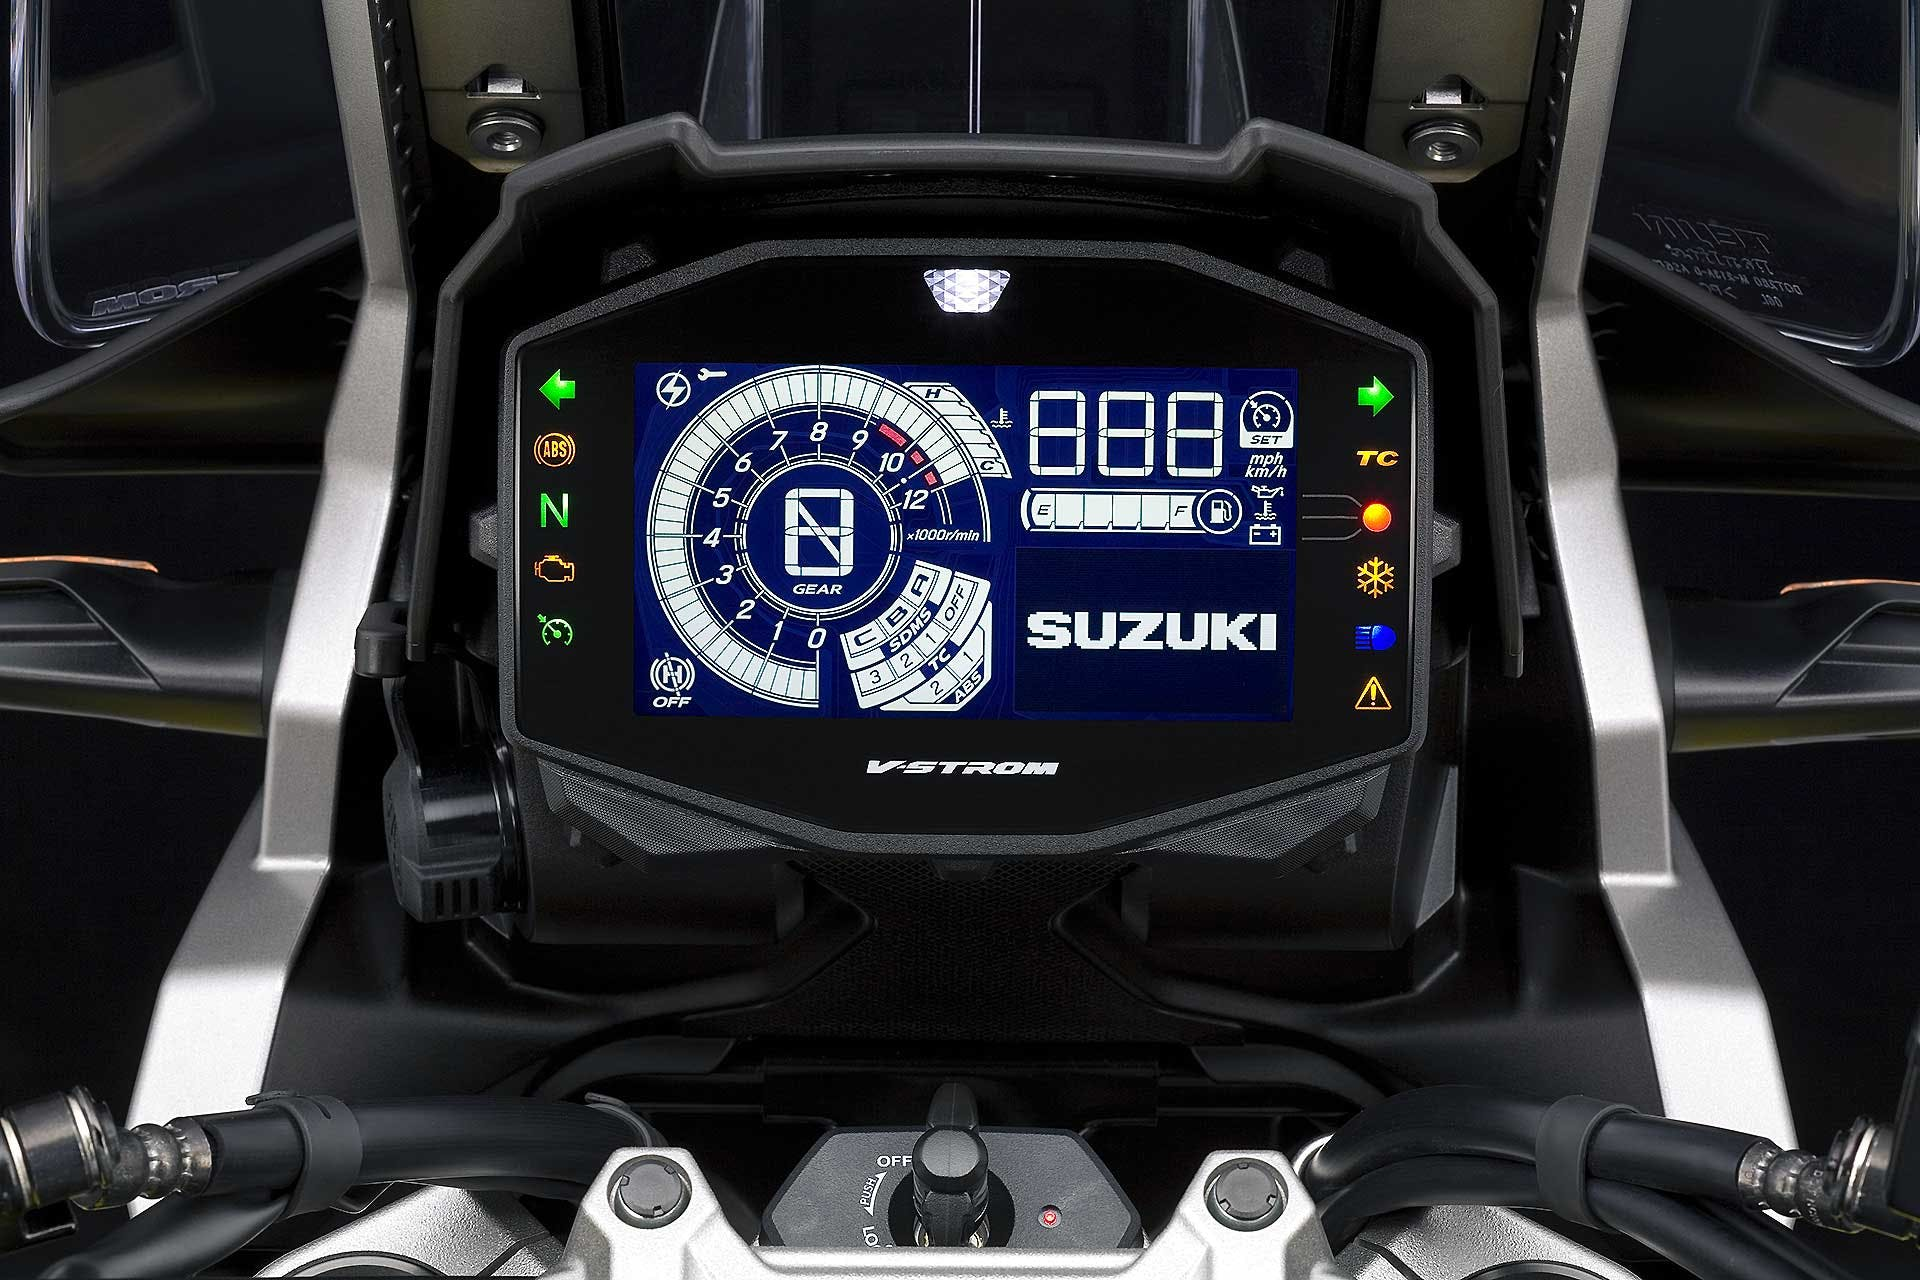 Suzuki V-Strom 1050 XT display